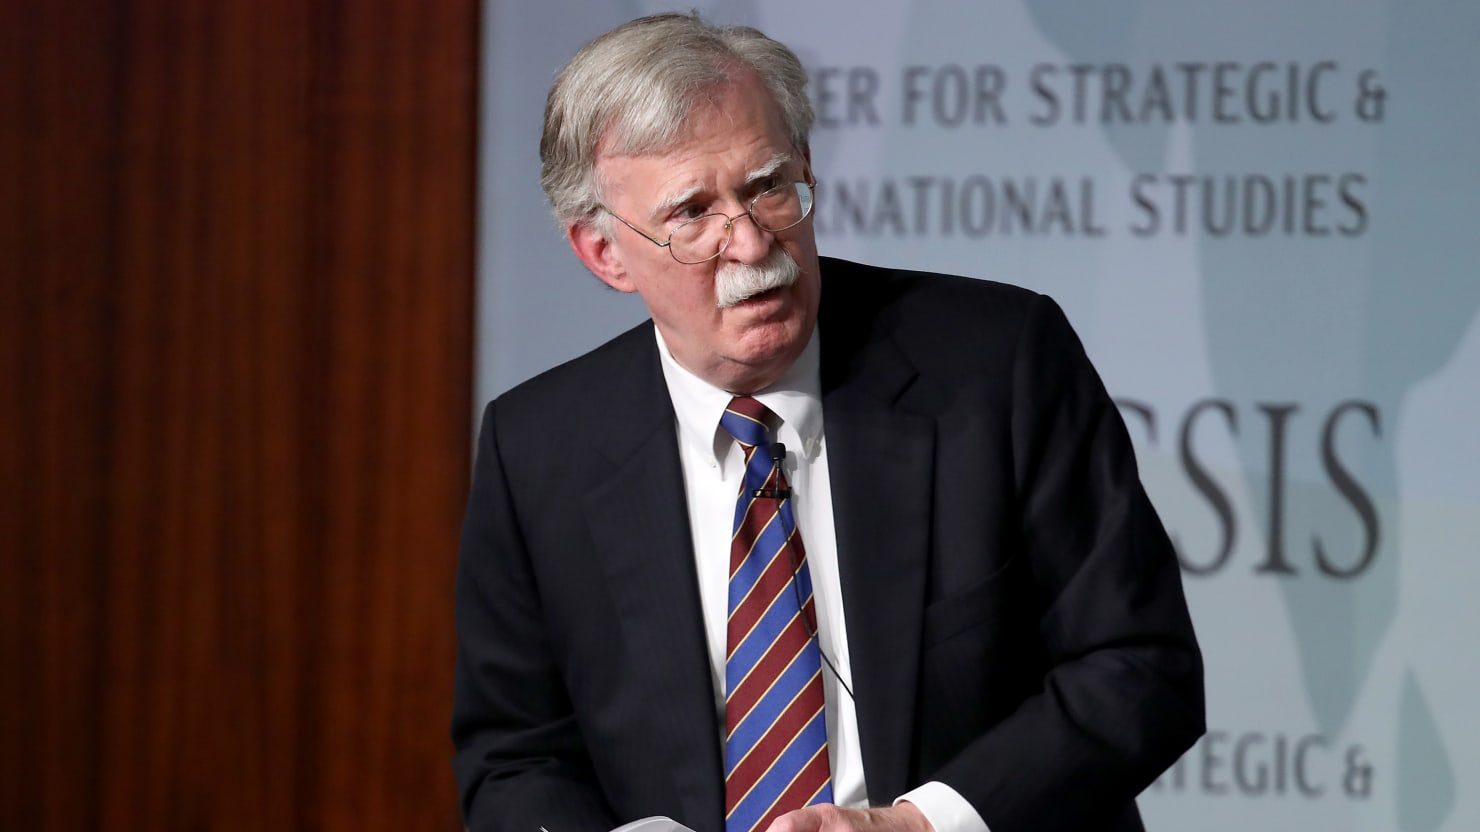 John Bolton Blasts 'Failed' Trump Policies (That He Helped Implement)